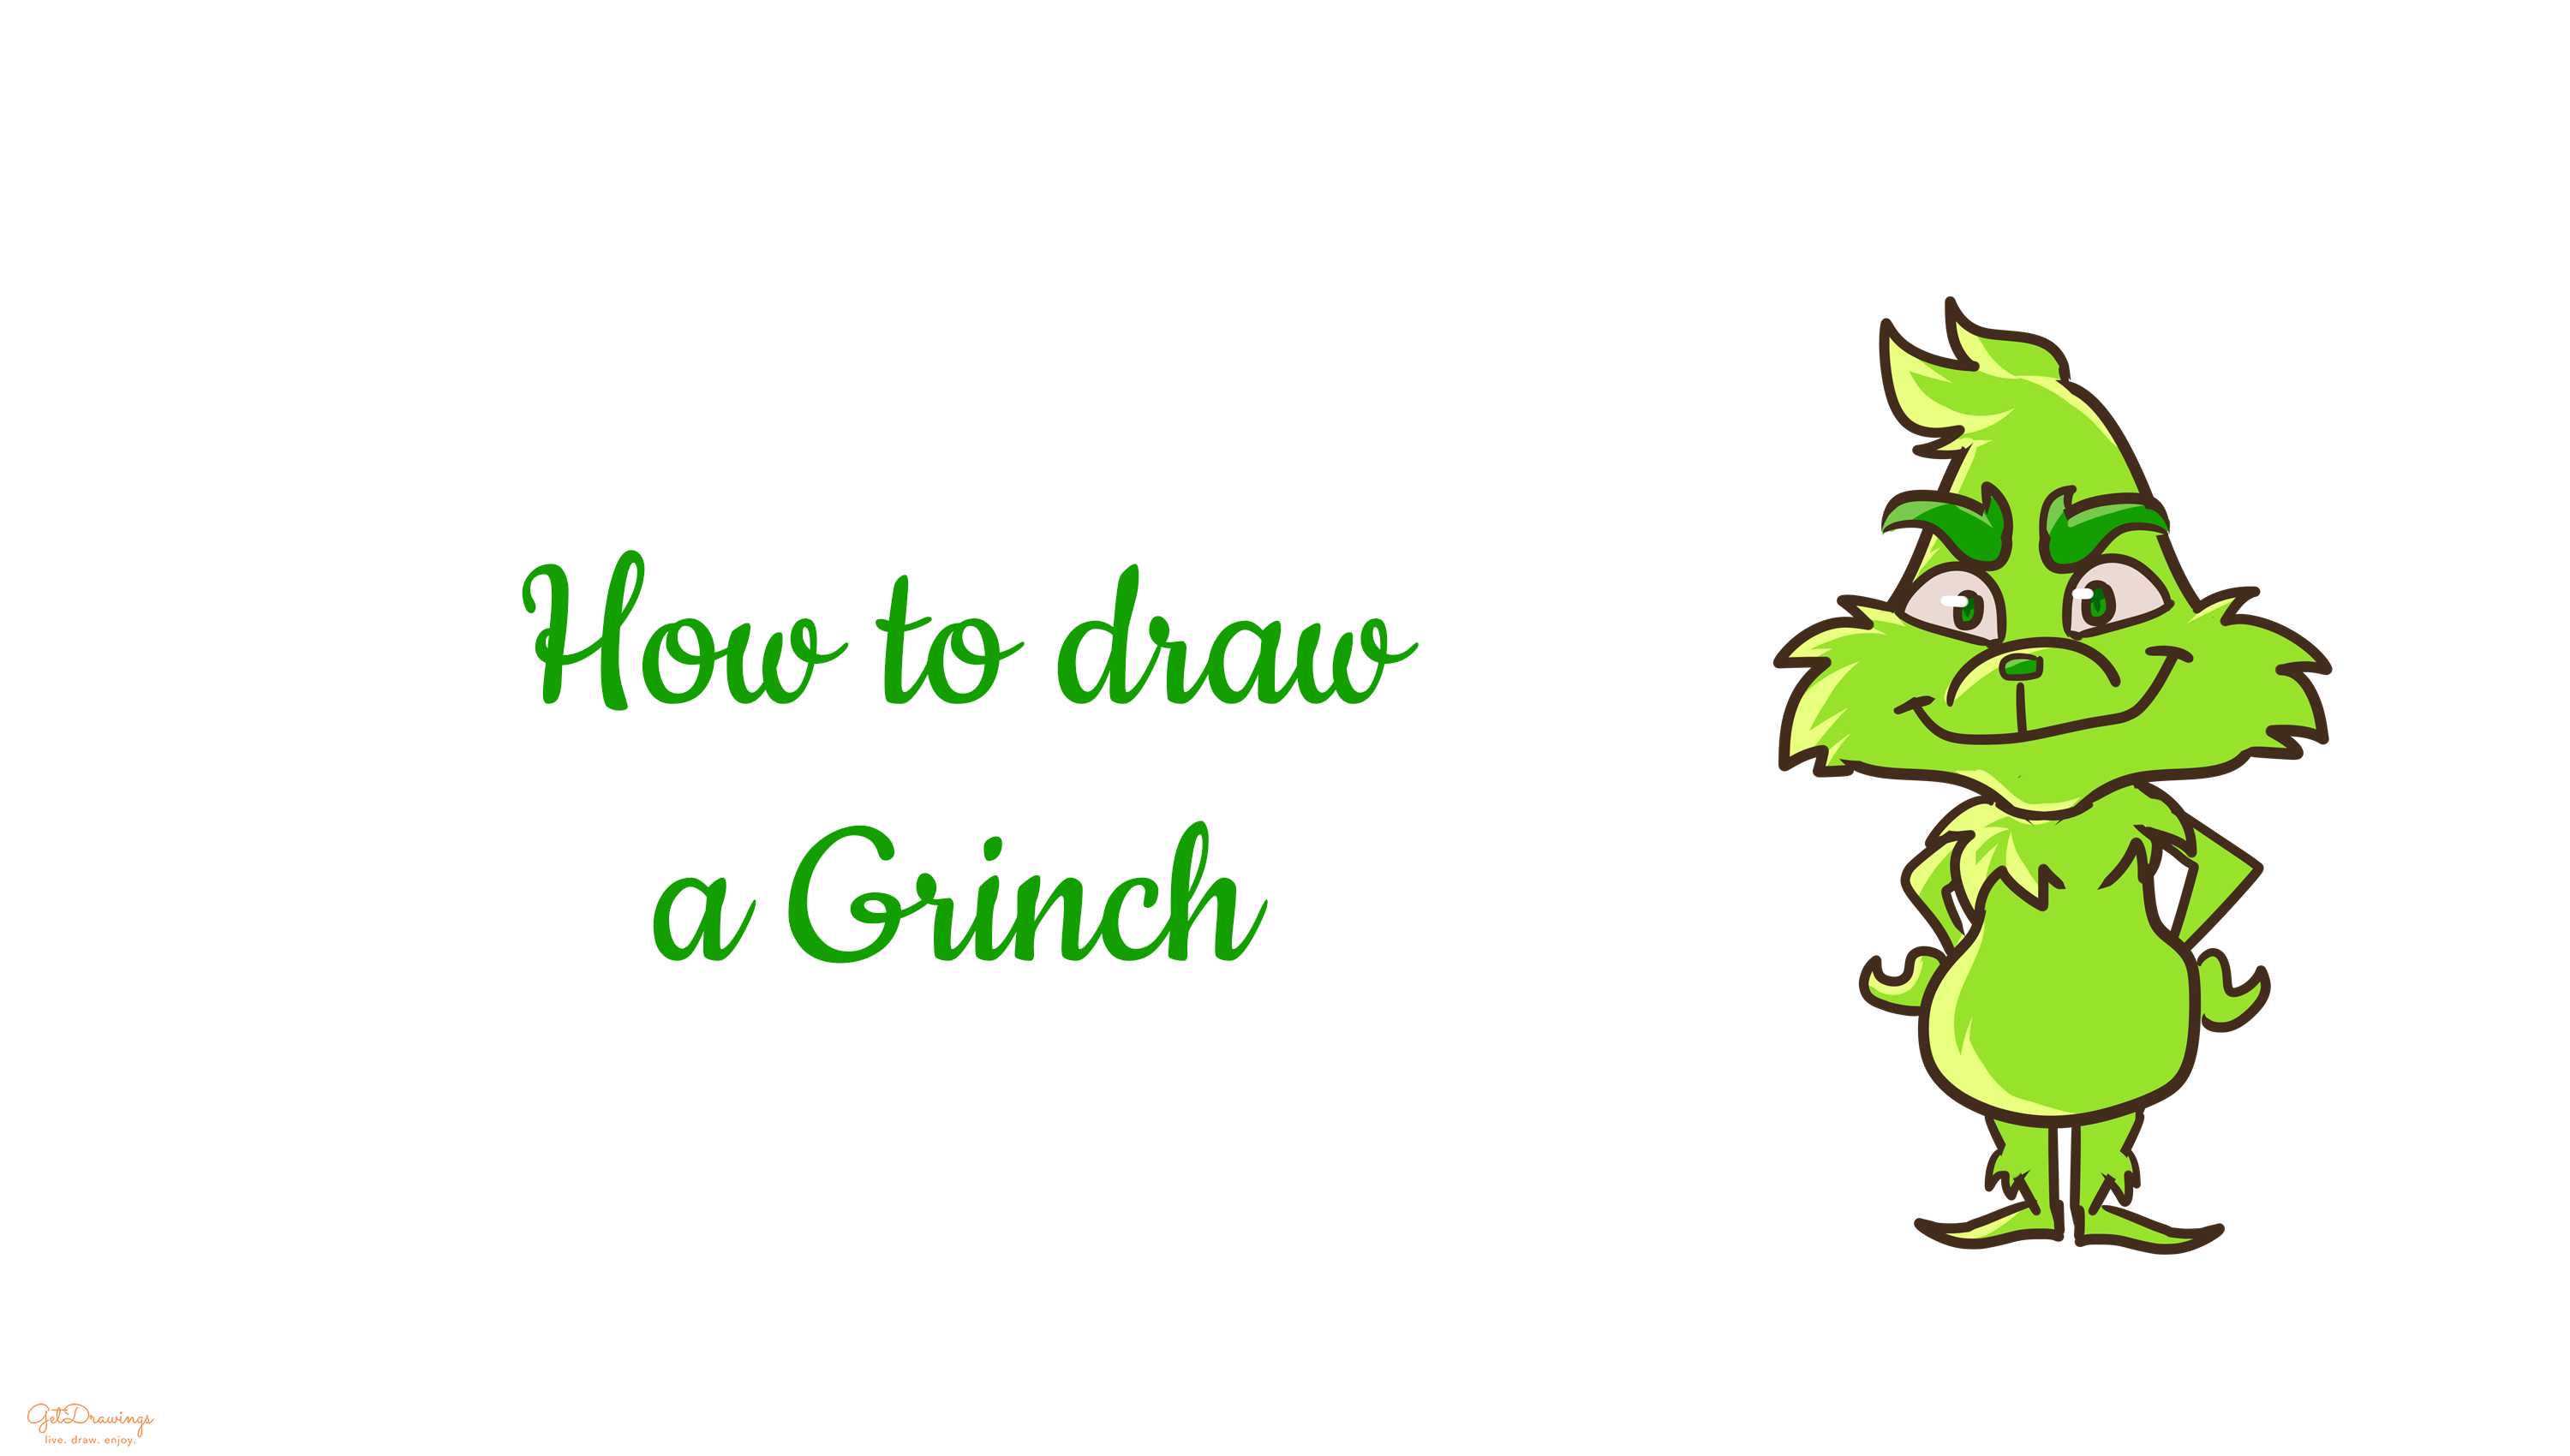 How to Draw a Grinch